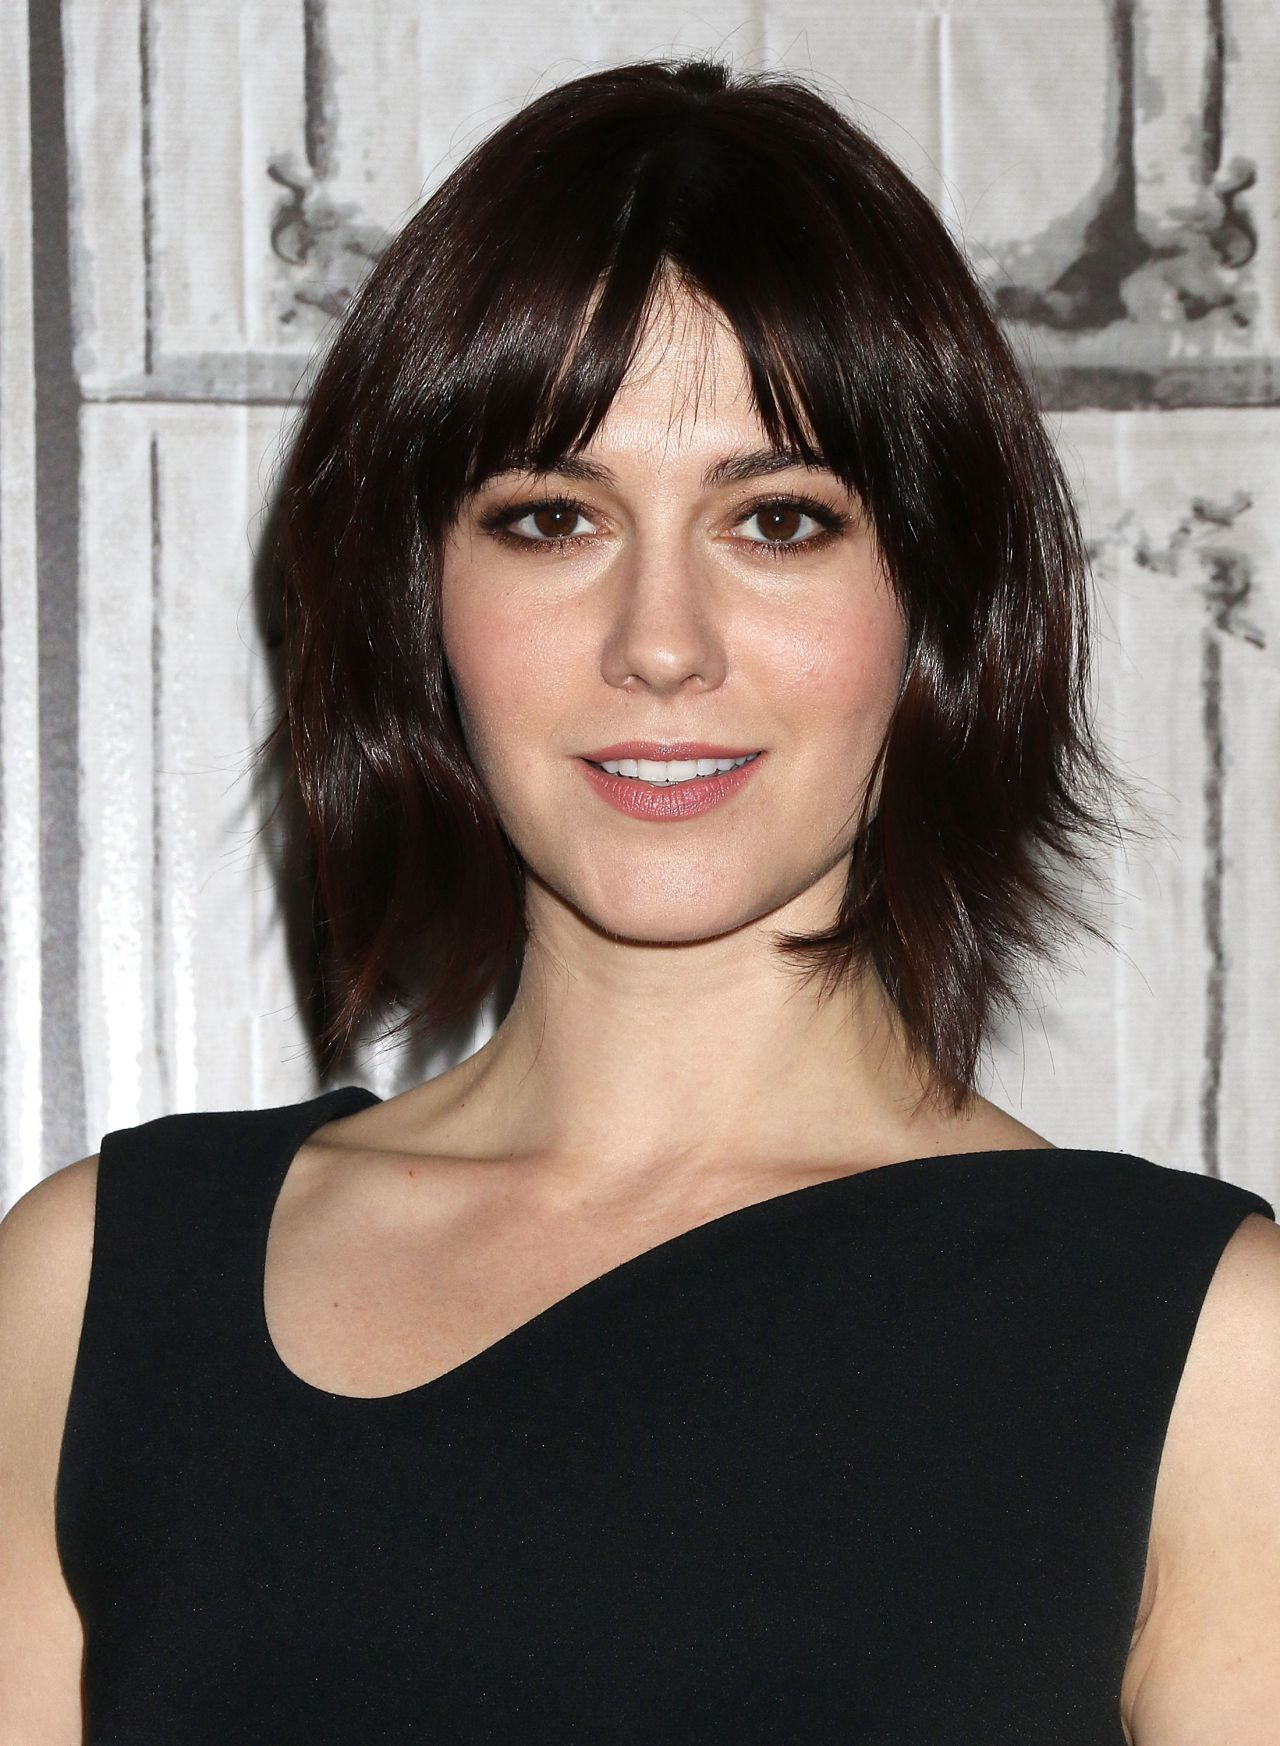 Mary elizabeth winstead fargo - 3 part 2